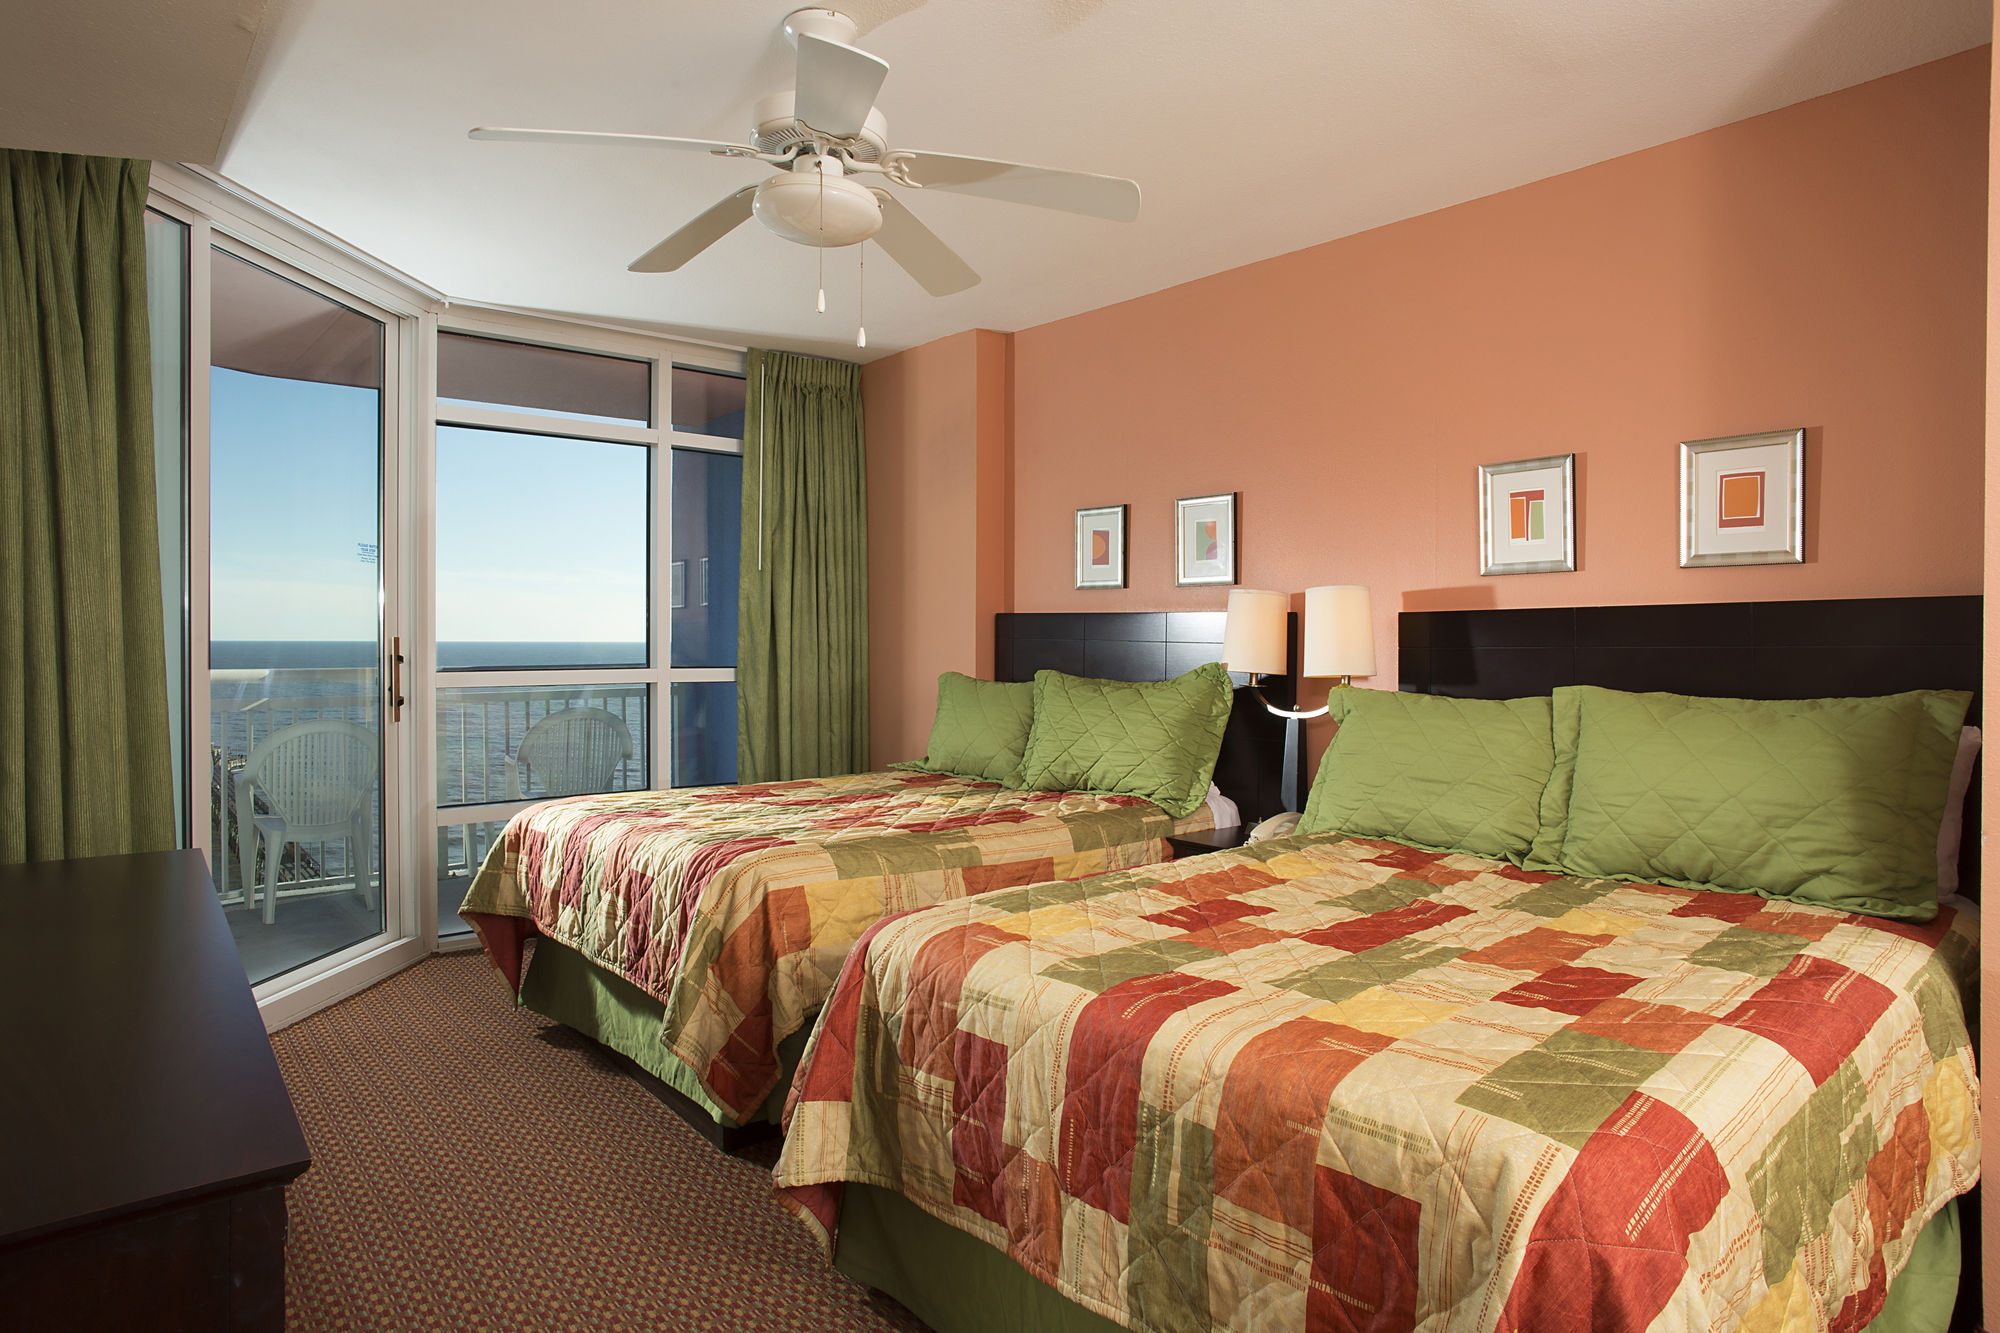 Discount Coupon For Prince Resort In North Myrtle Beach